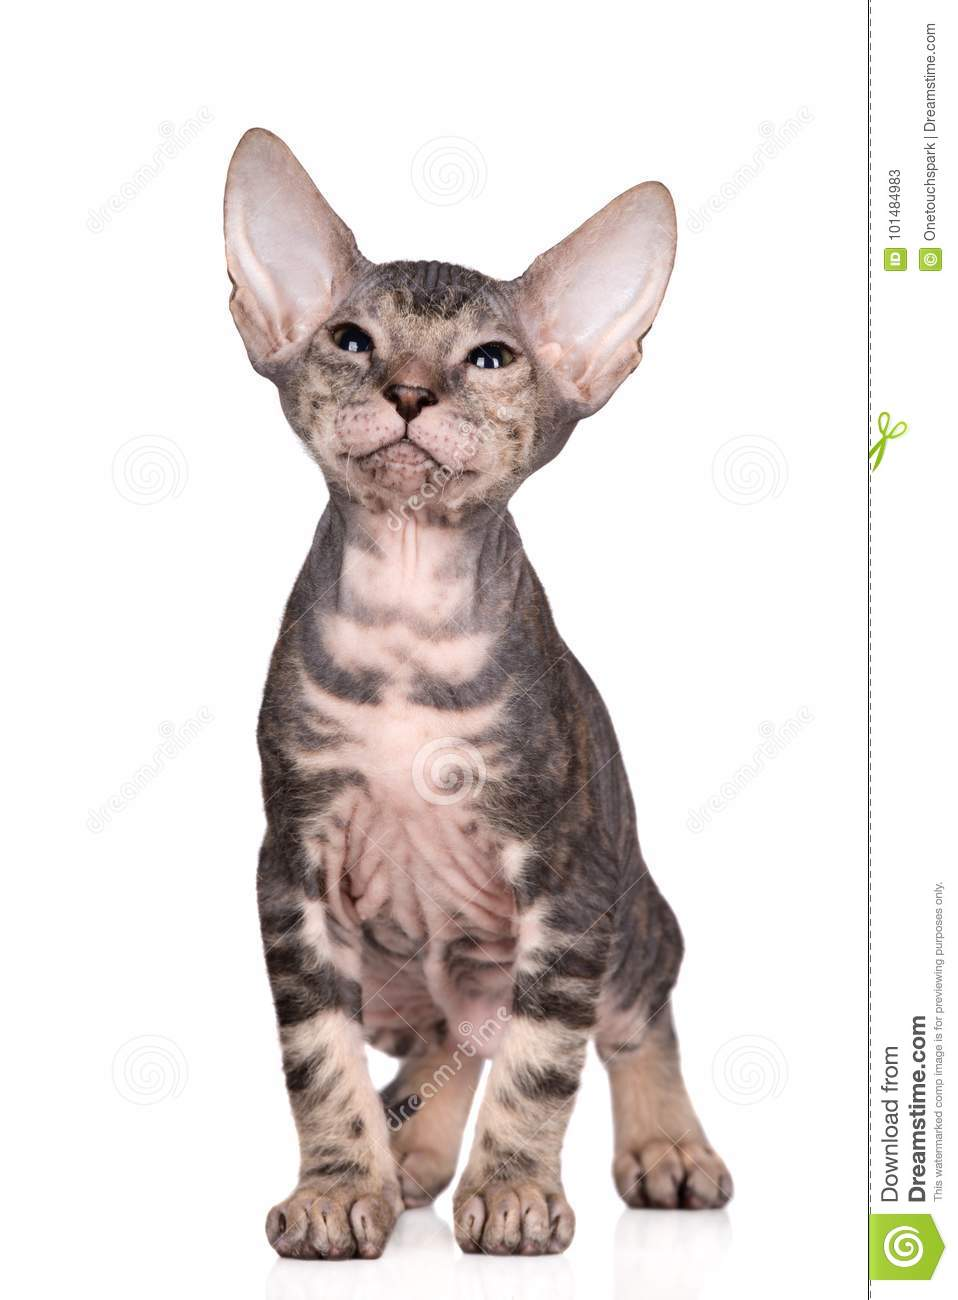 Adorable Sphynx Kitten Posing On White Stock Image - Image